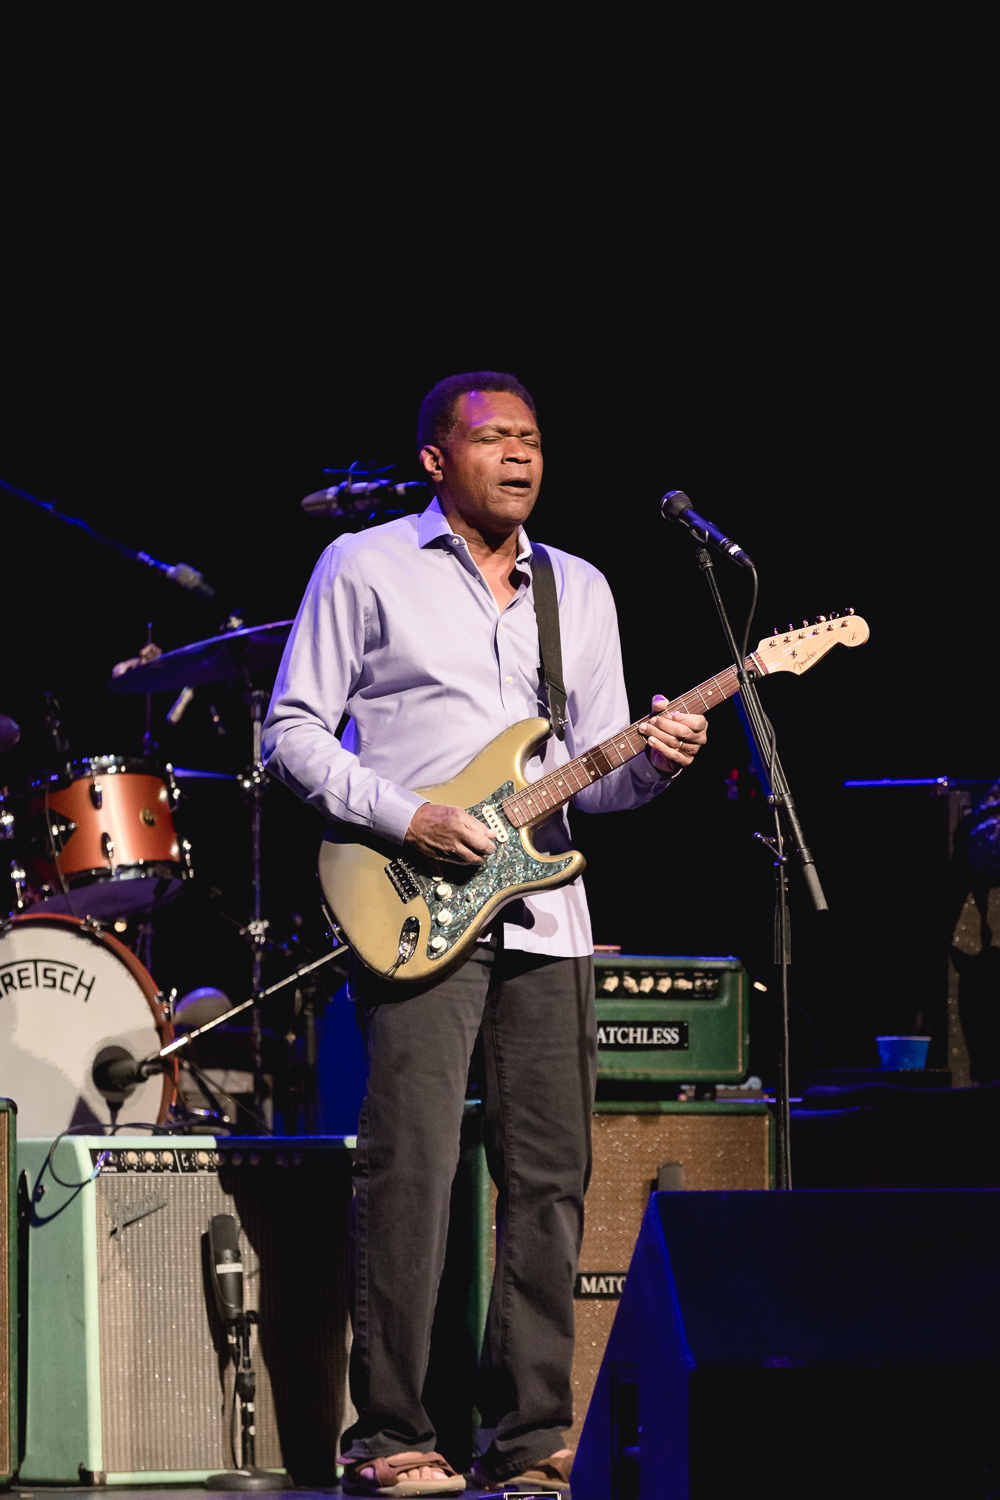 Robert Cray plays a guitar solo during his set at he Eccles Theater. Photo: @Lmsorenson.net